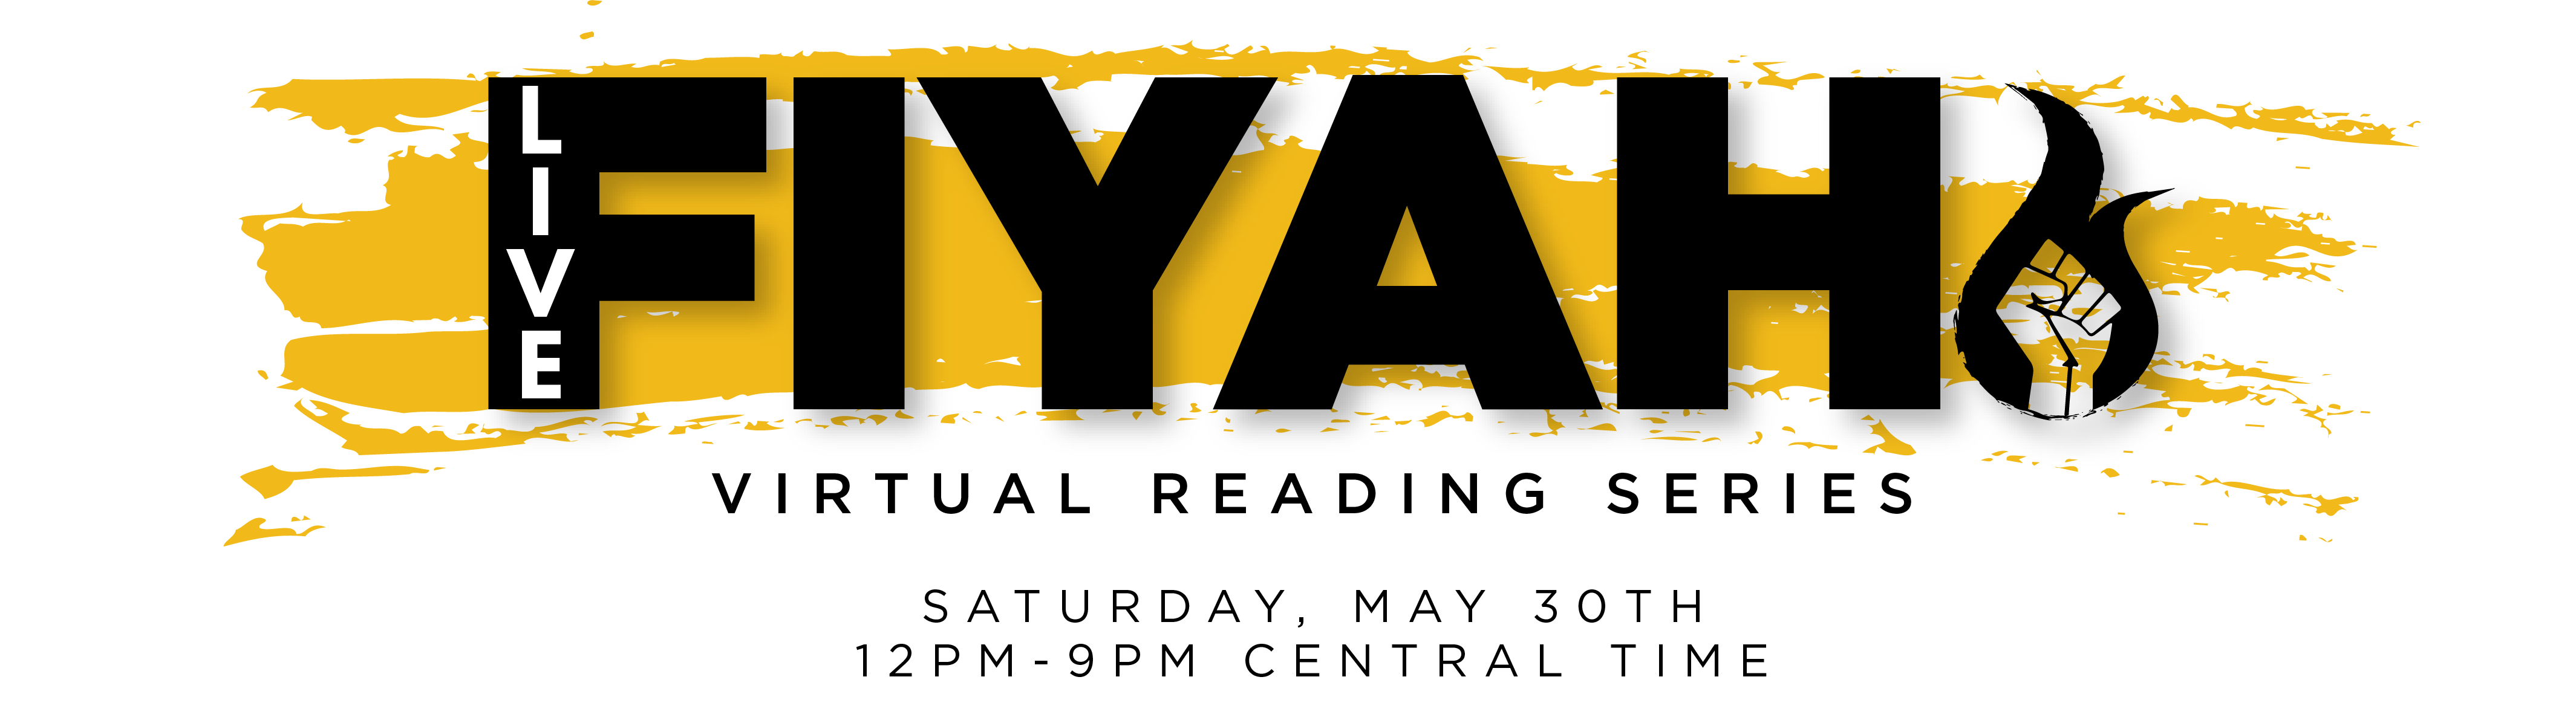 Live!FIYAH Reading Series header